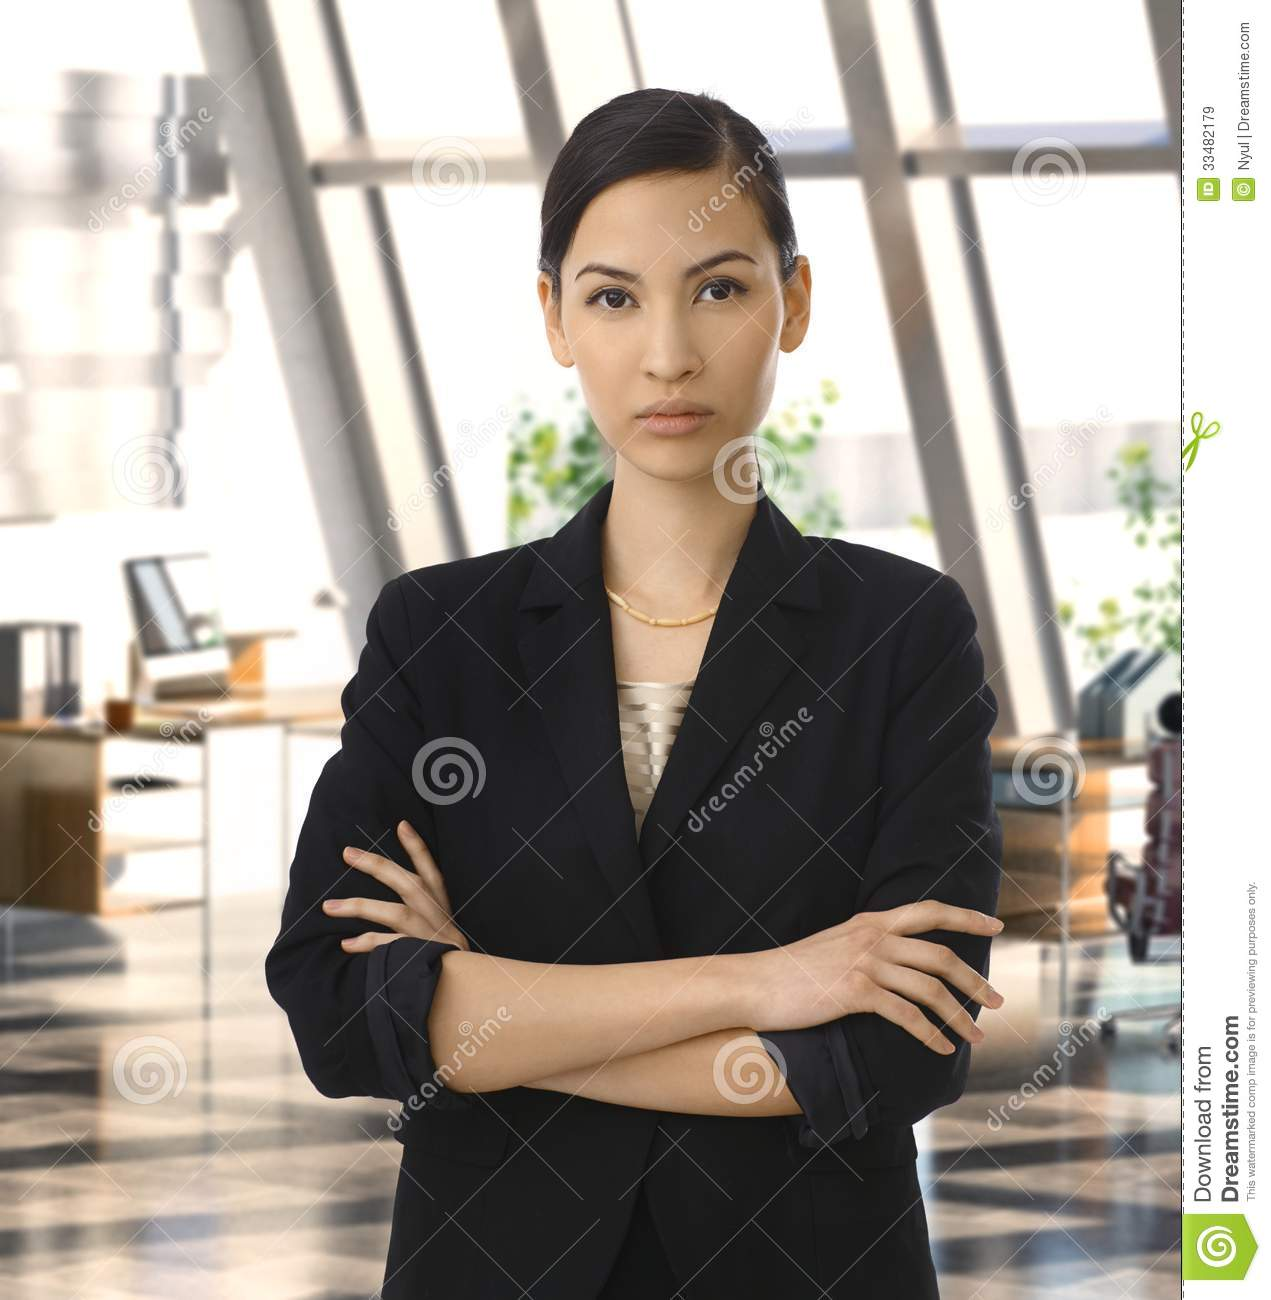 Elegant Asian Elegant Asian Businesswoman In Corporate Office Royalty Free Stock